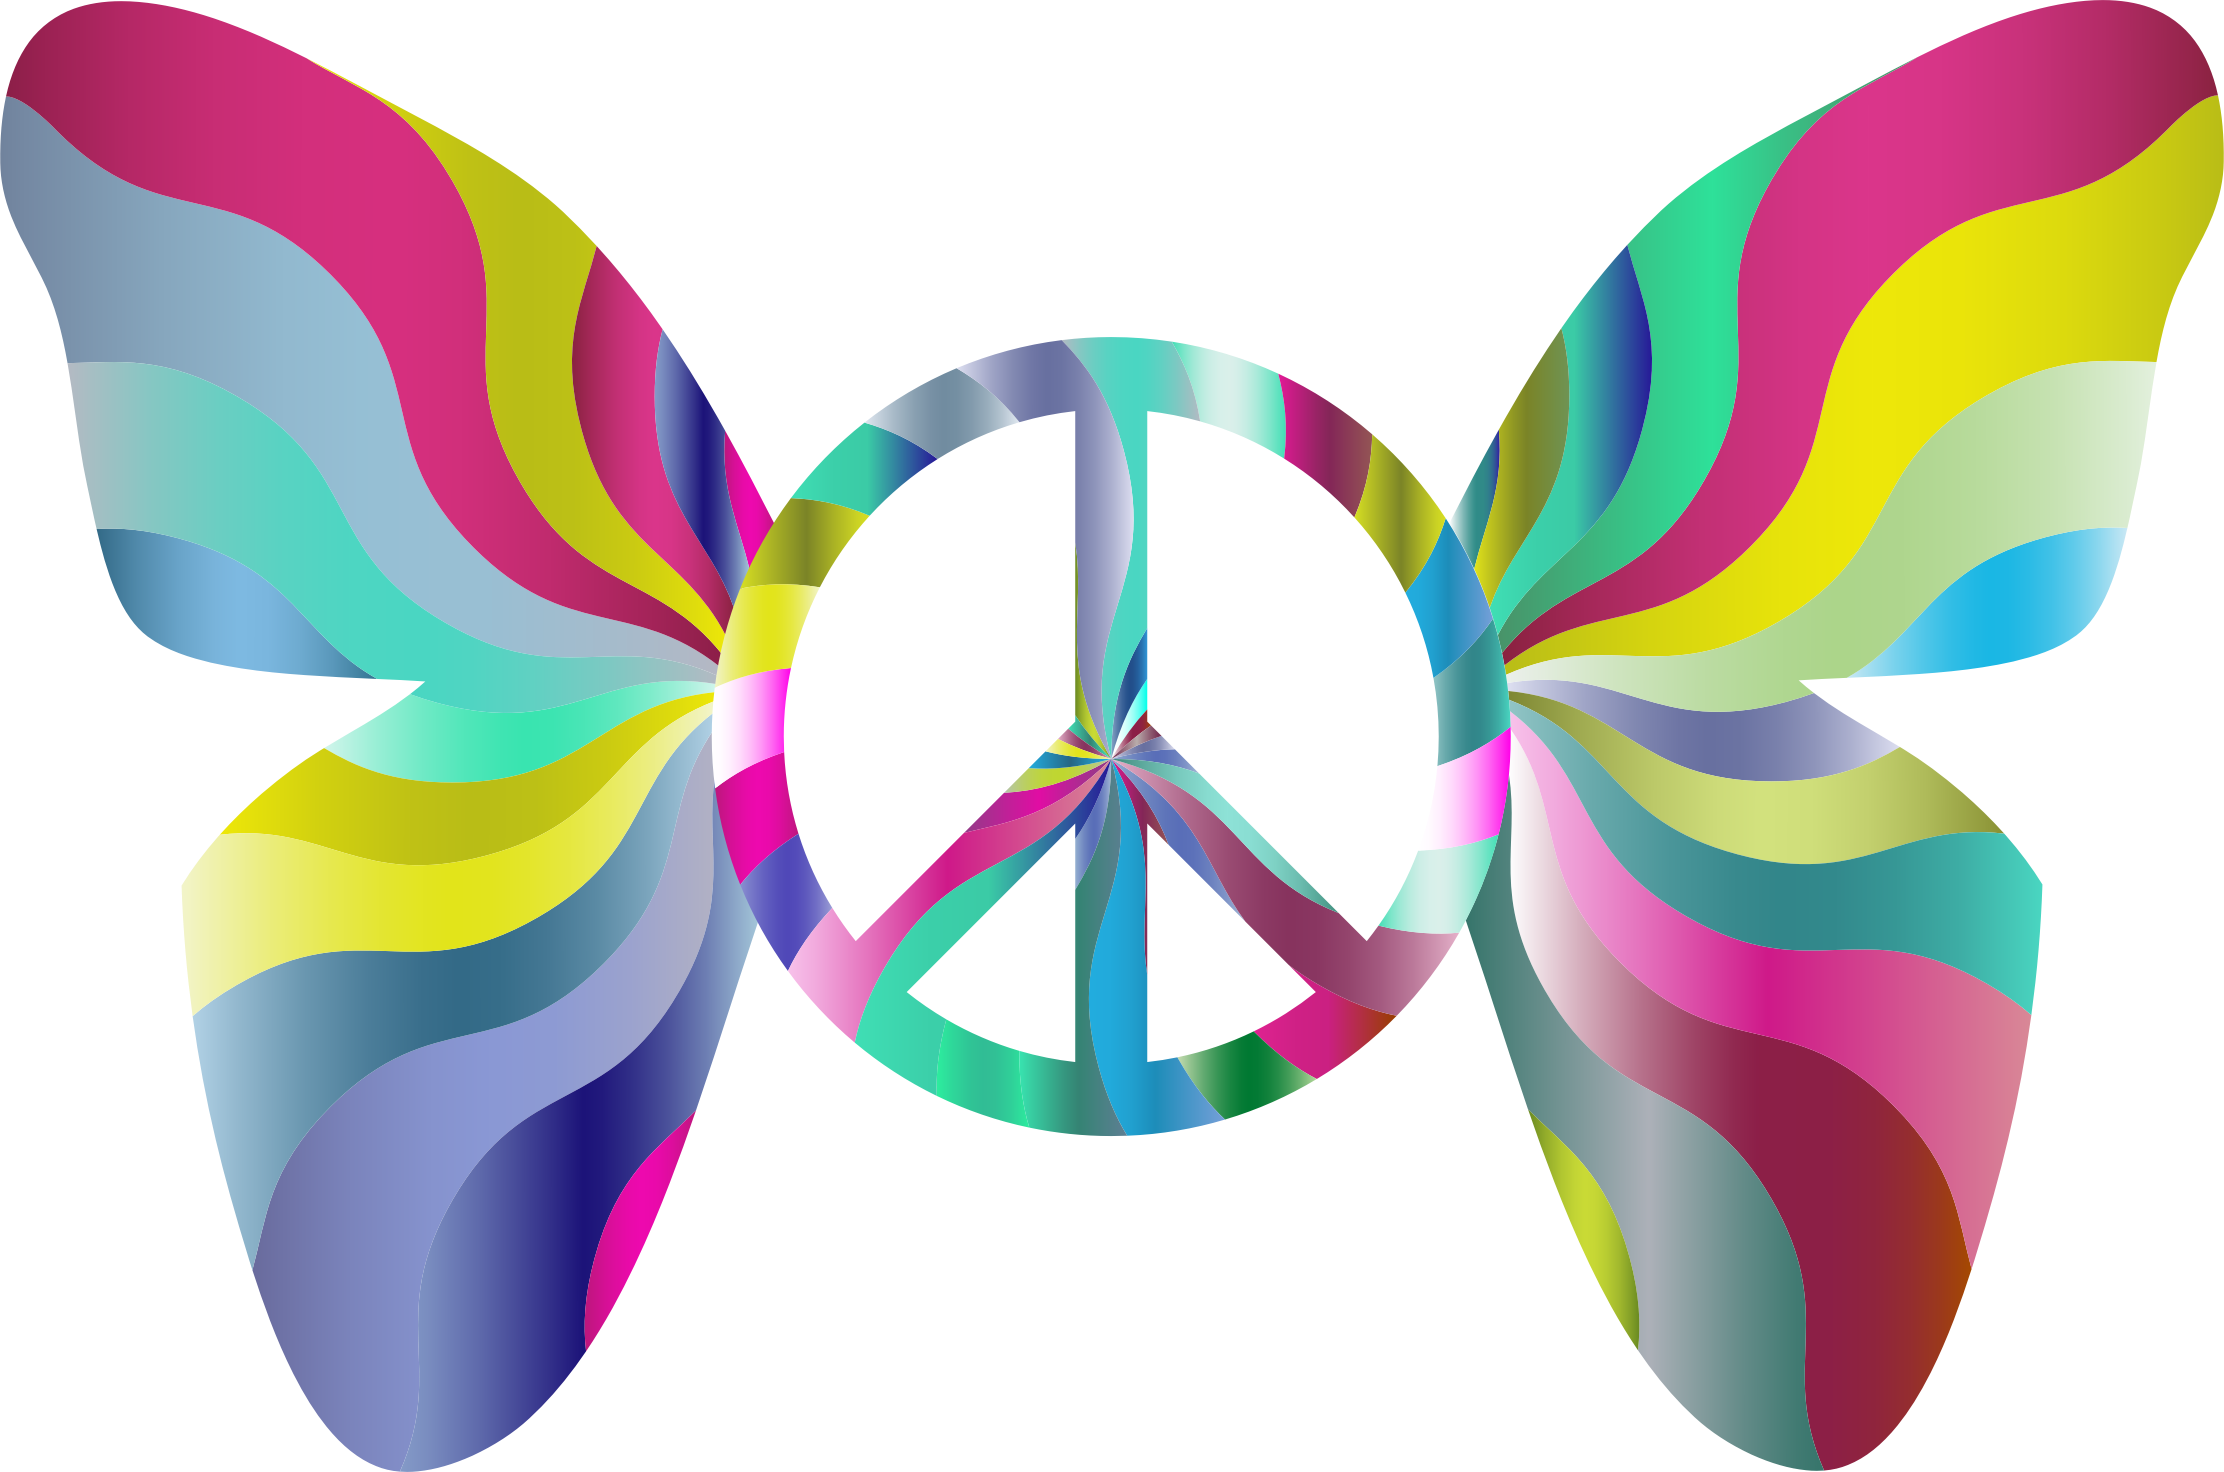 Groovy Peace Sign Butterfly 5 by GDJ